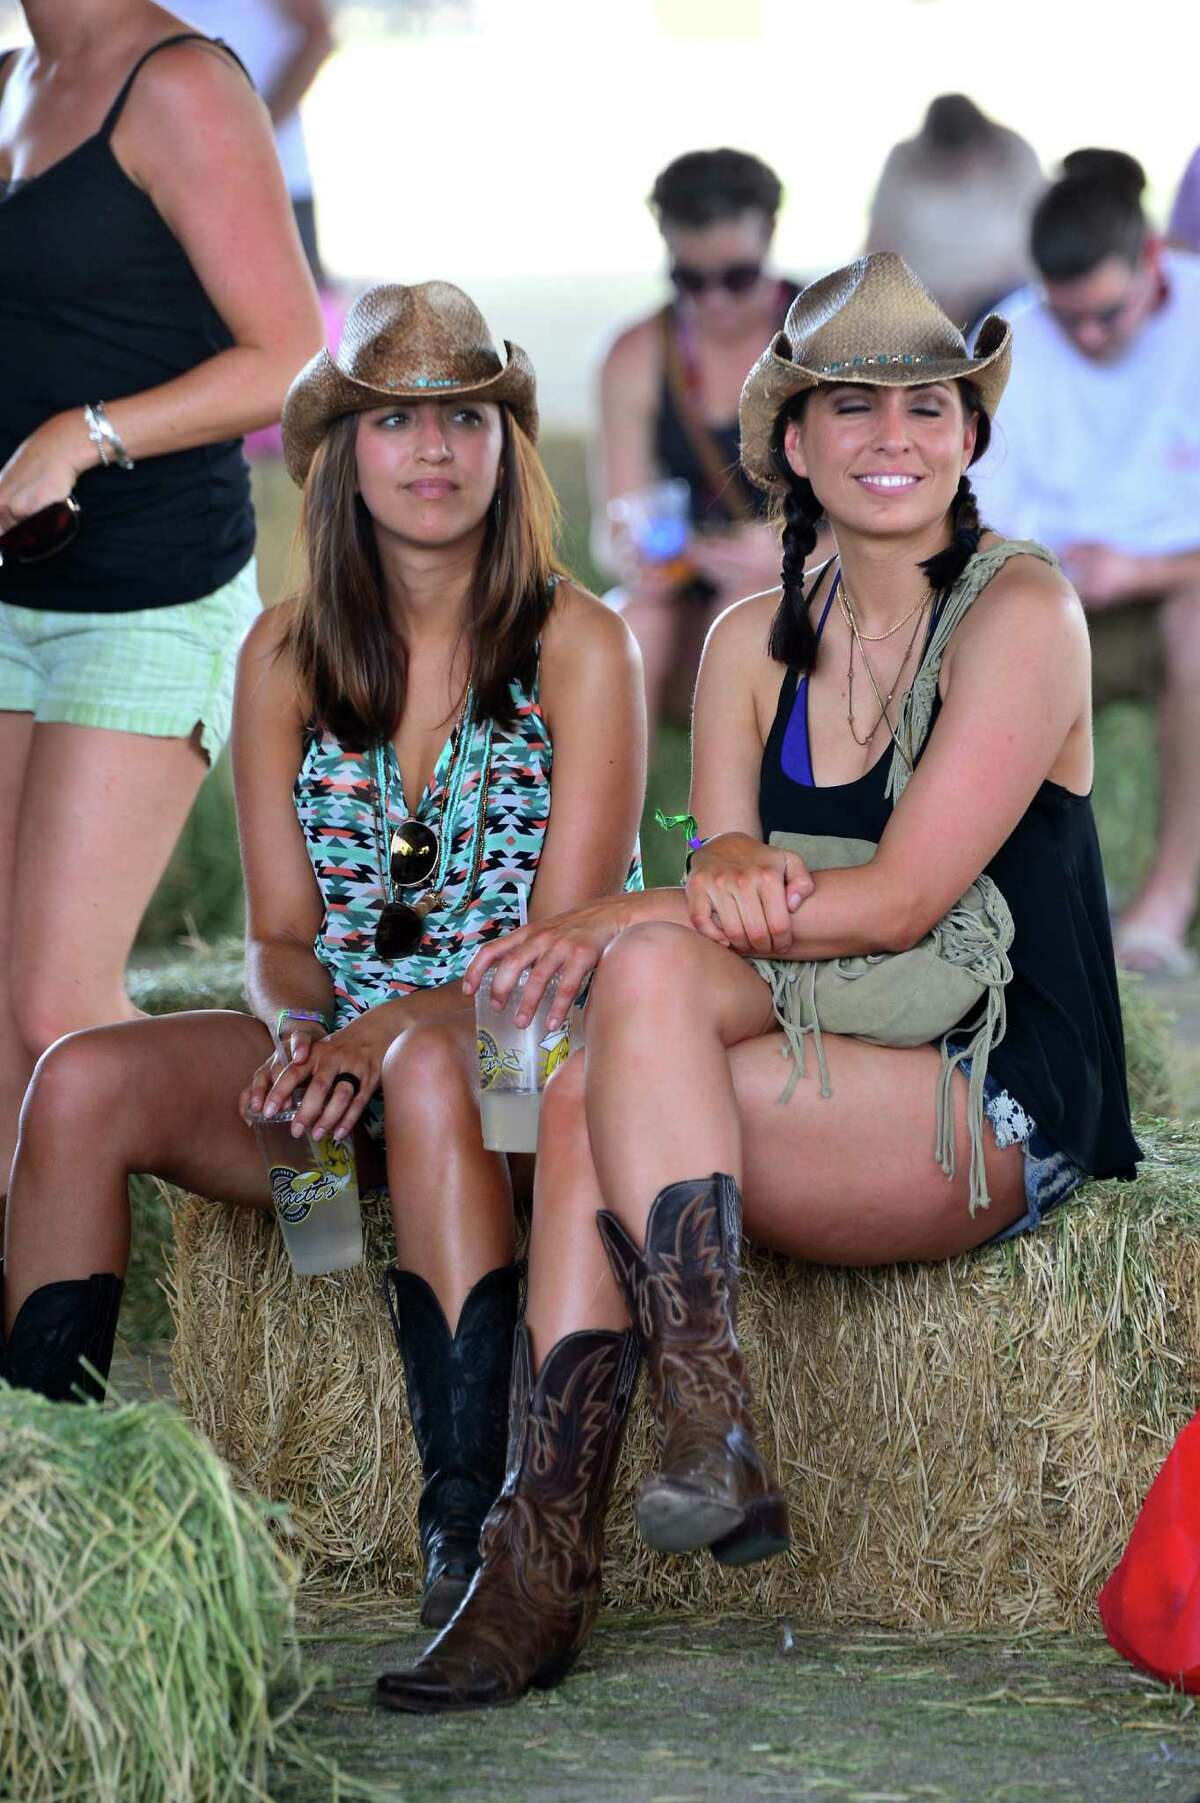 Music fans during day 1 of 2014 Stagecoach: California's Country Music Festival at the Empire Polo Club on April 25, 2014 in Indio, California.